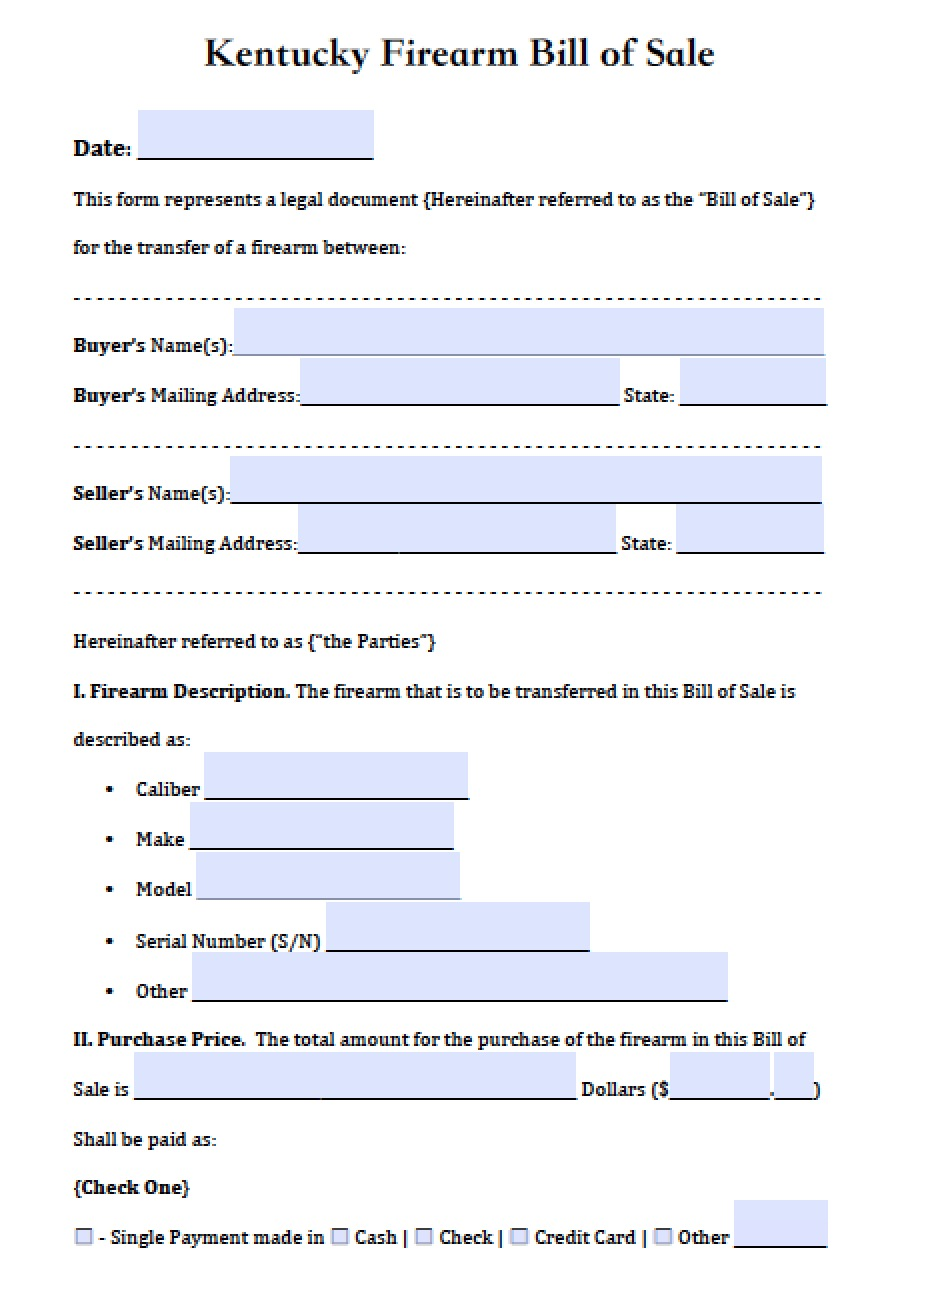 free louisiana firearm gun bill of sale form pdf word doc